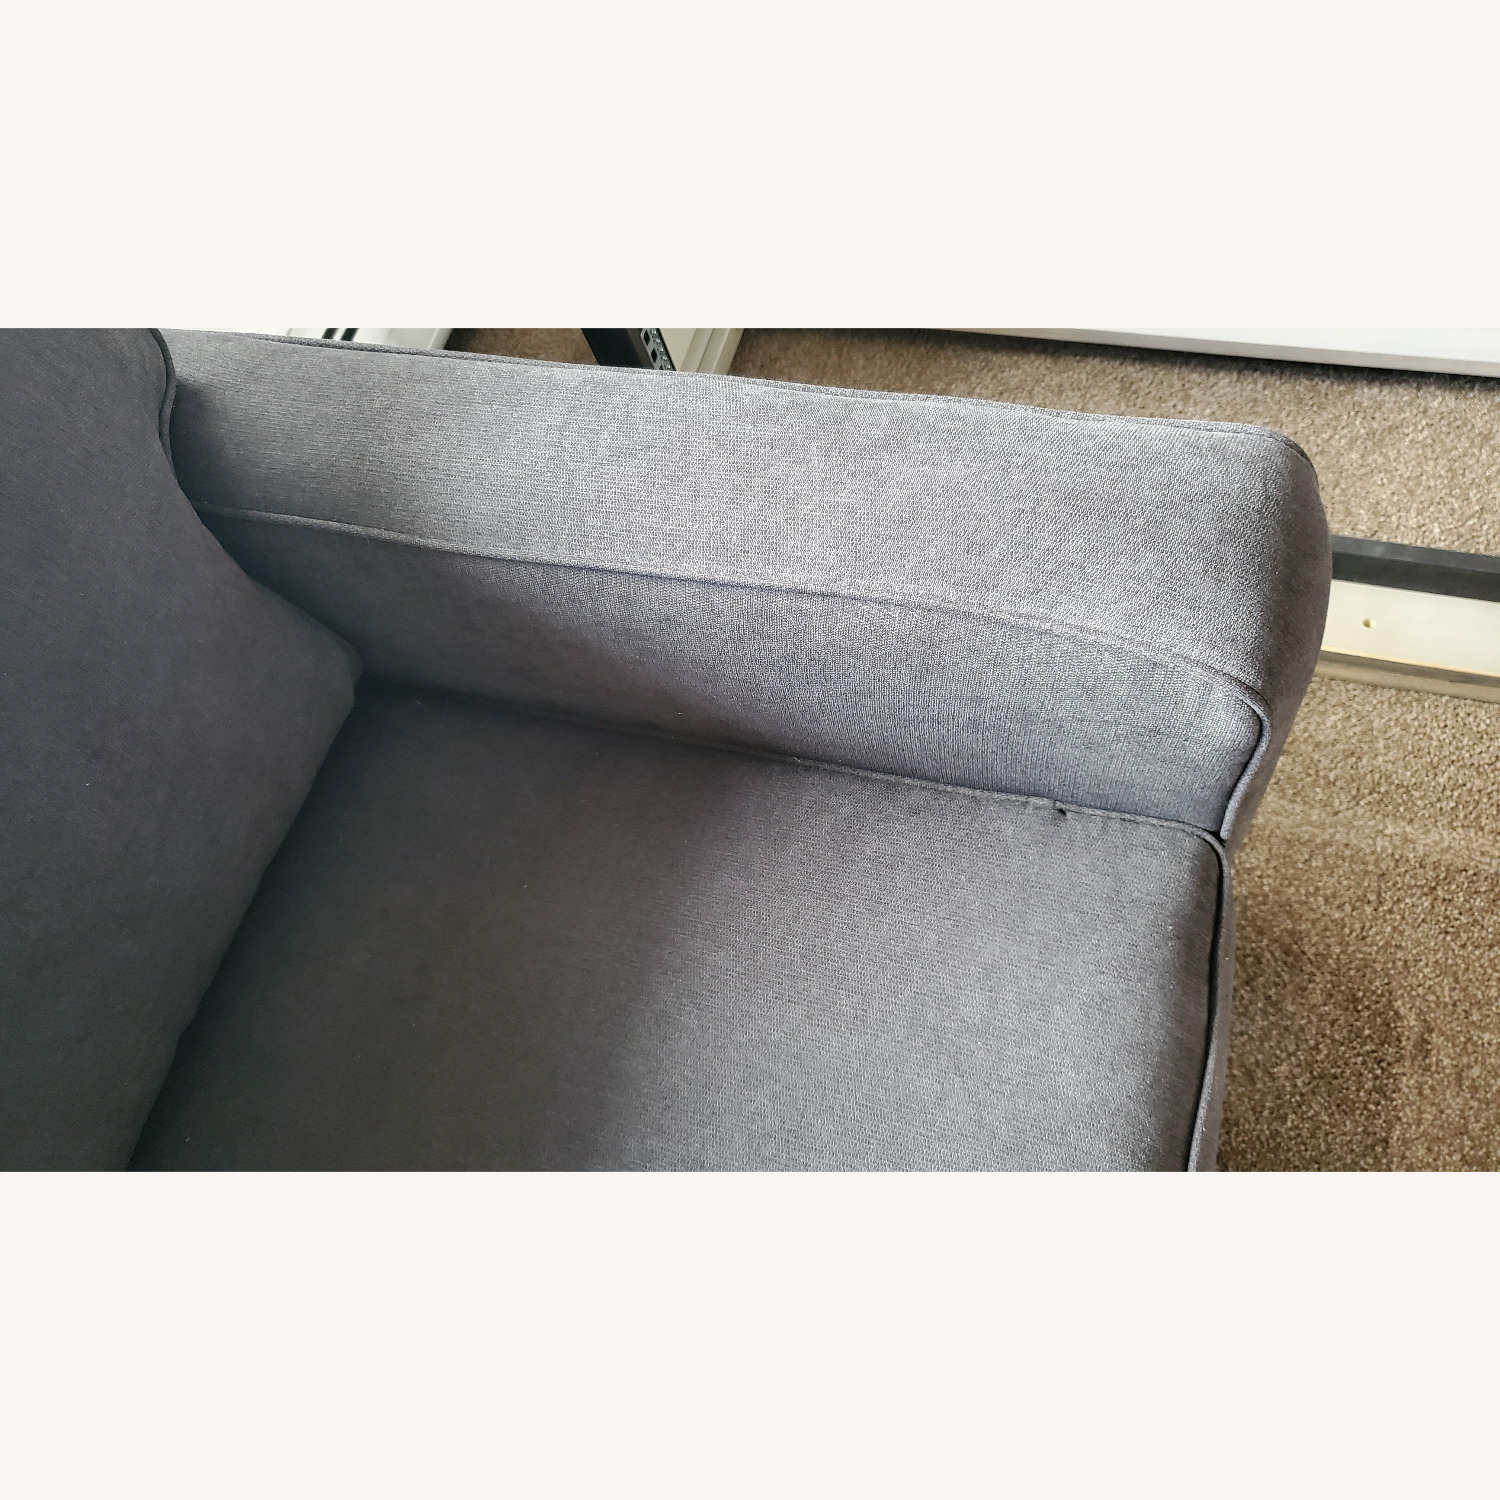 Ashley Furniture ZEB Sleeper Sofa - image-10